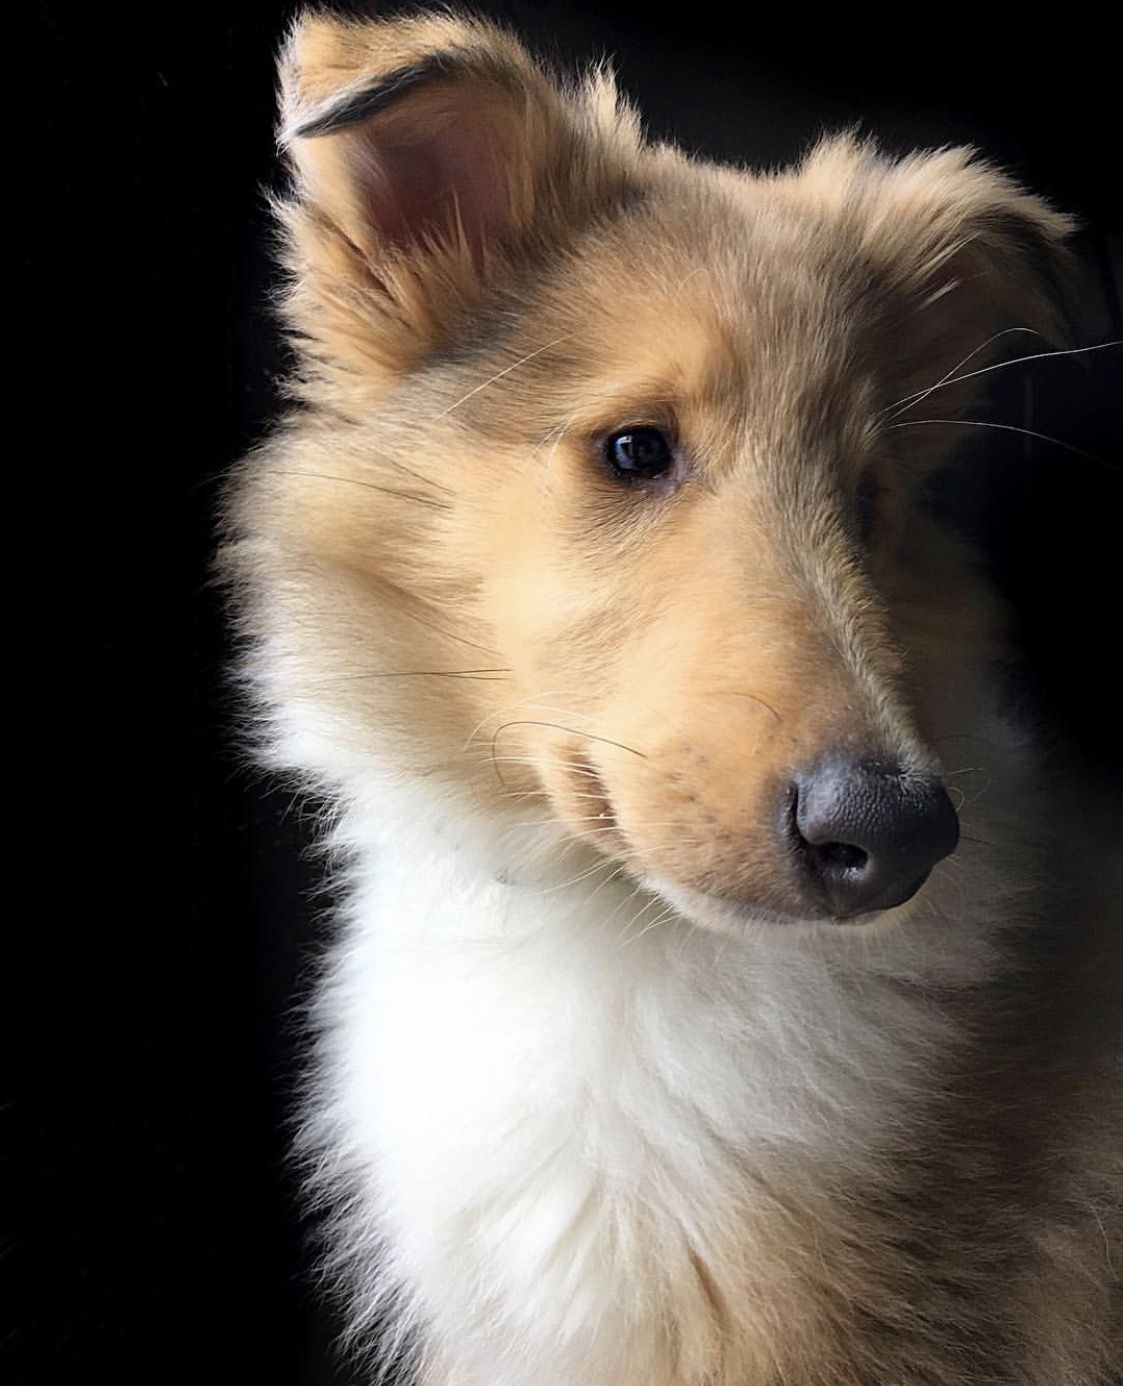 Winnie. Sable Merle Rough Collie, 2 months old. (With